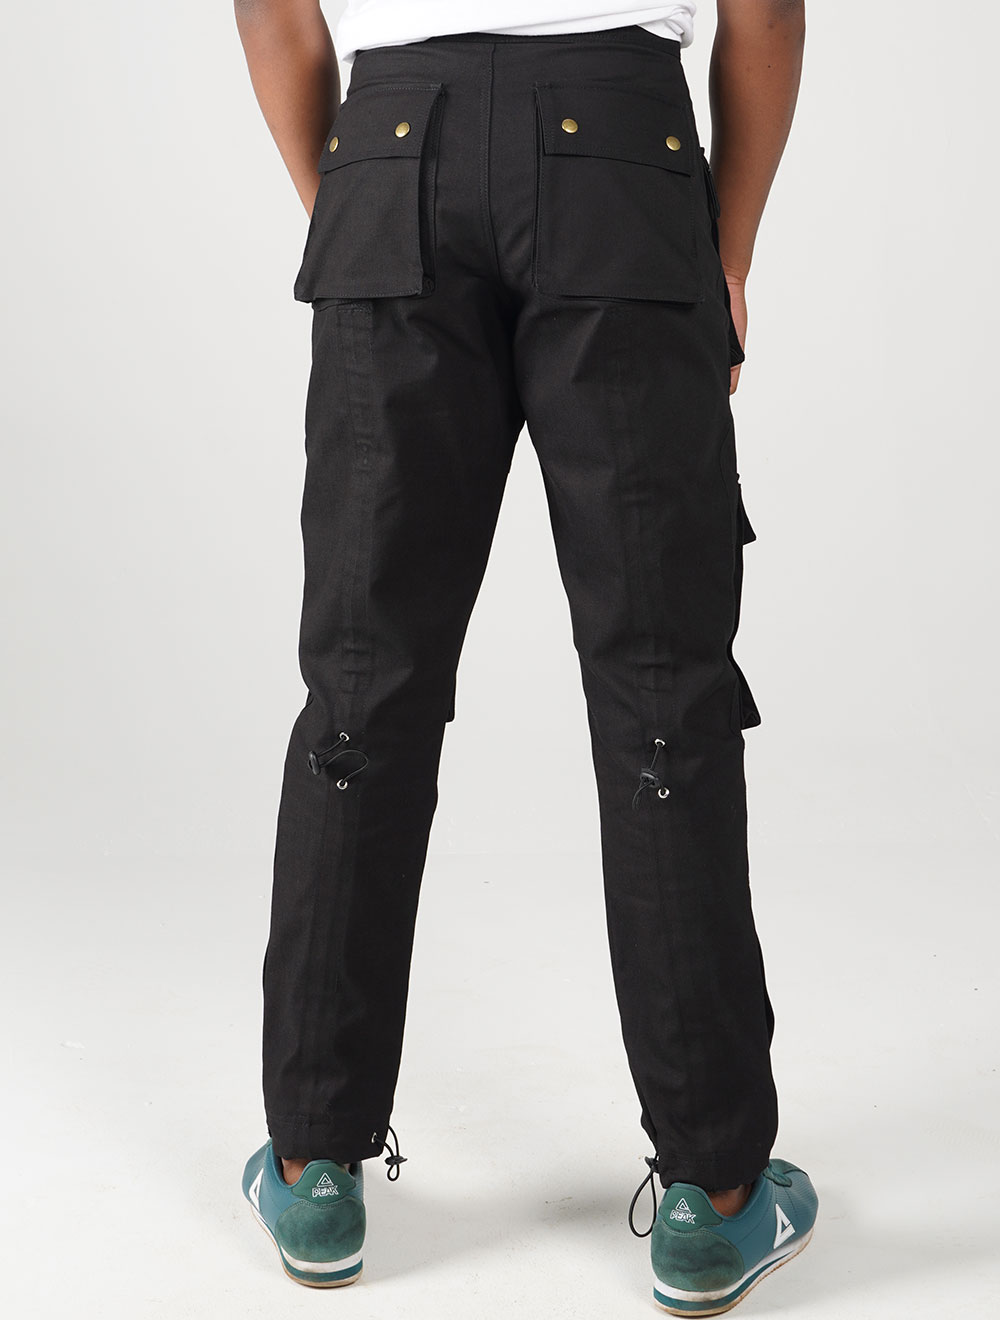 Inkunz'emnyama tech cargo pants – Back